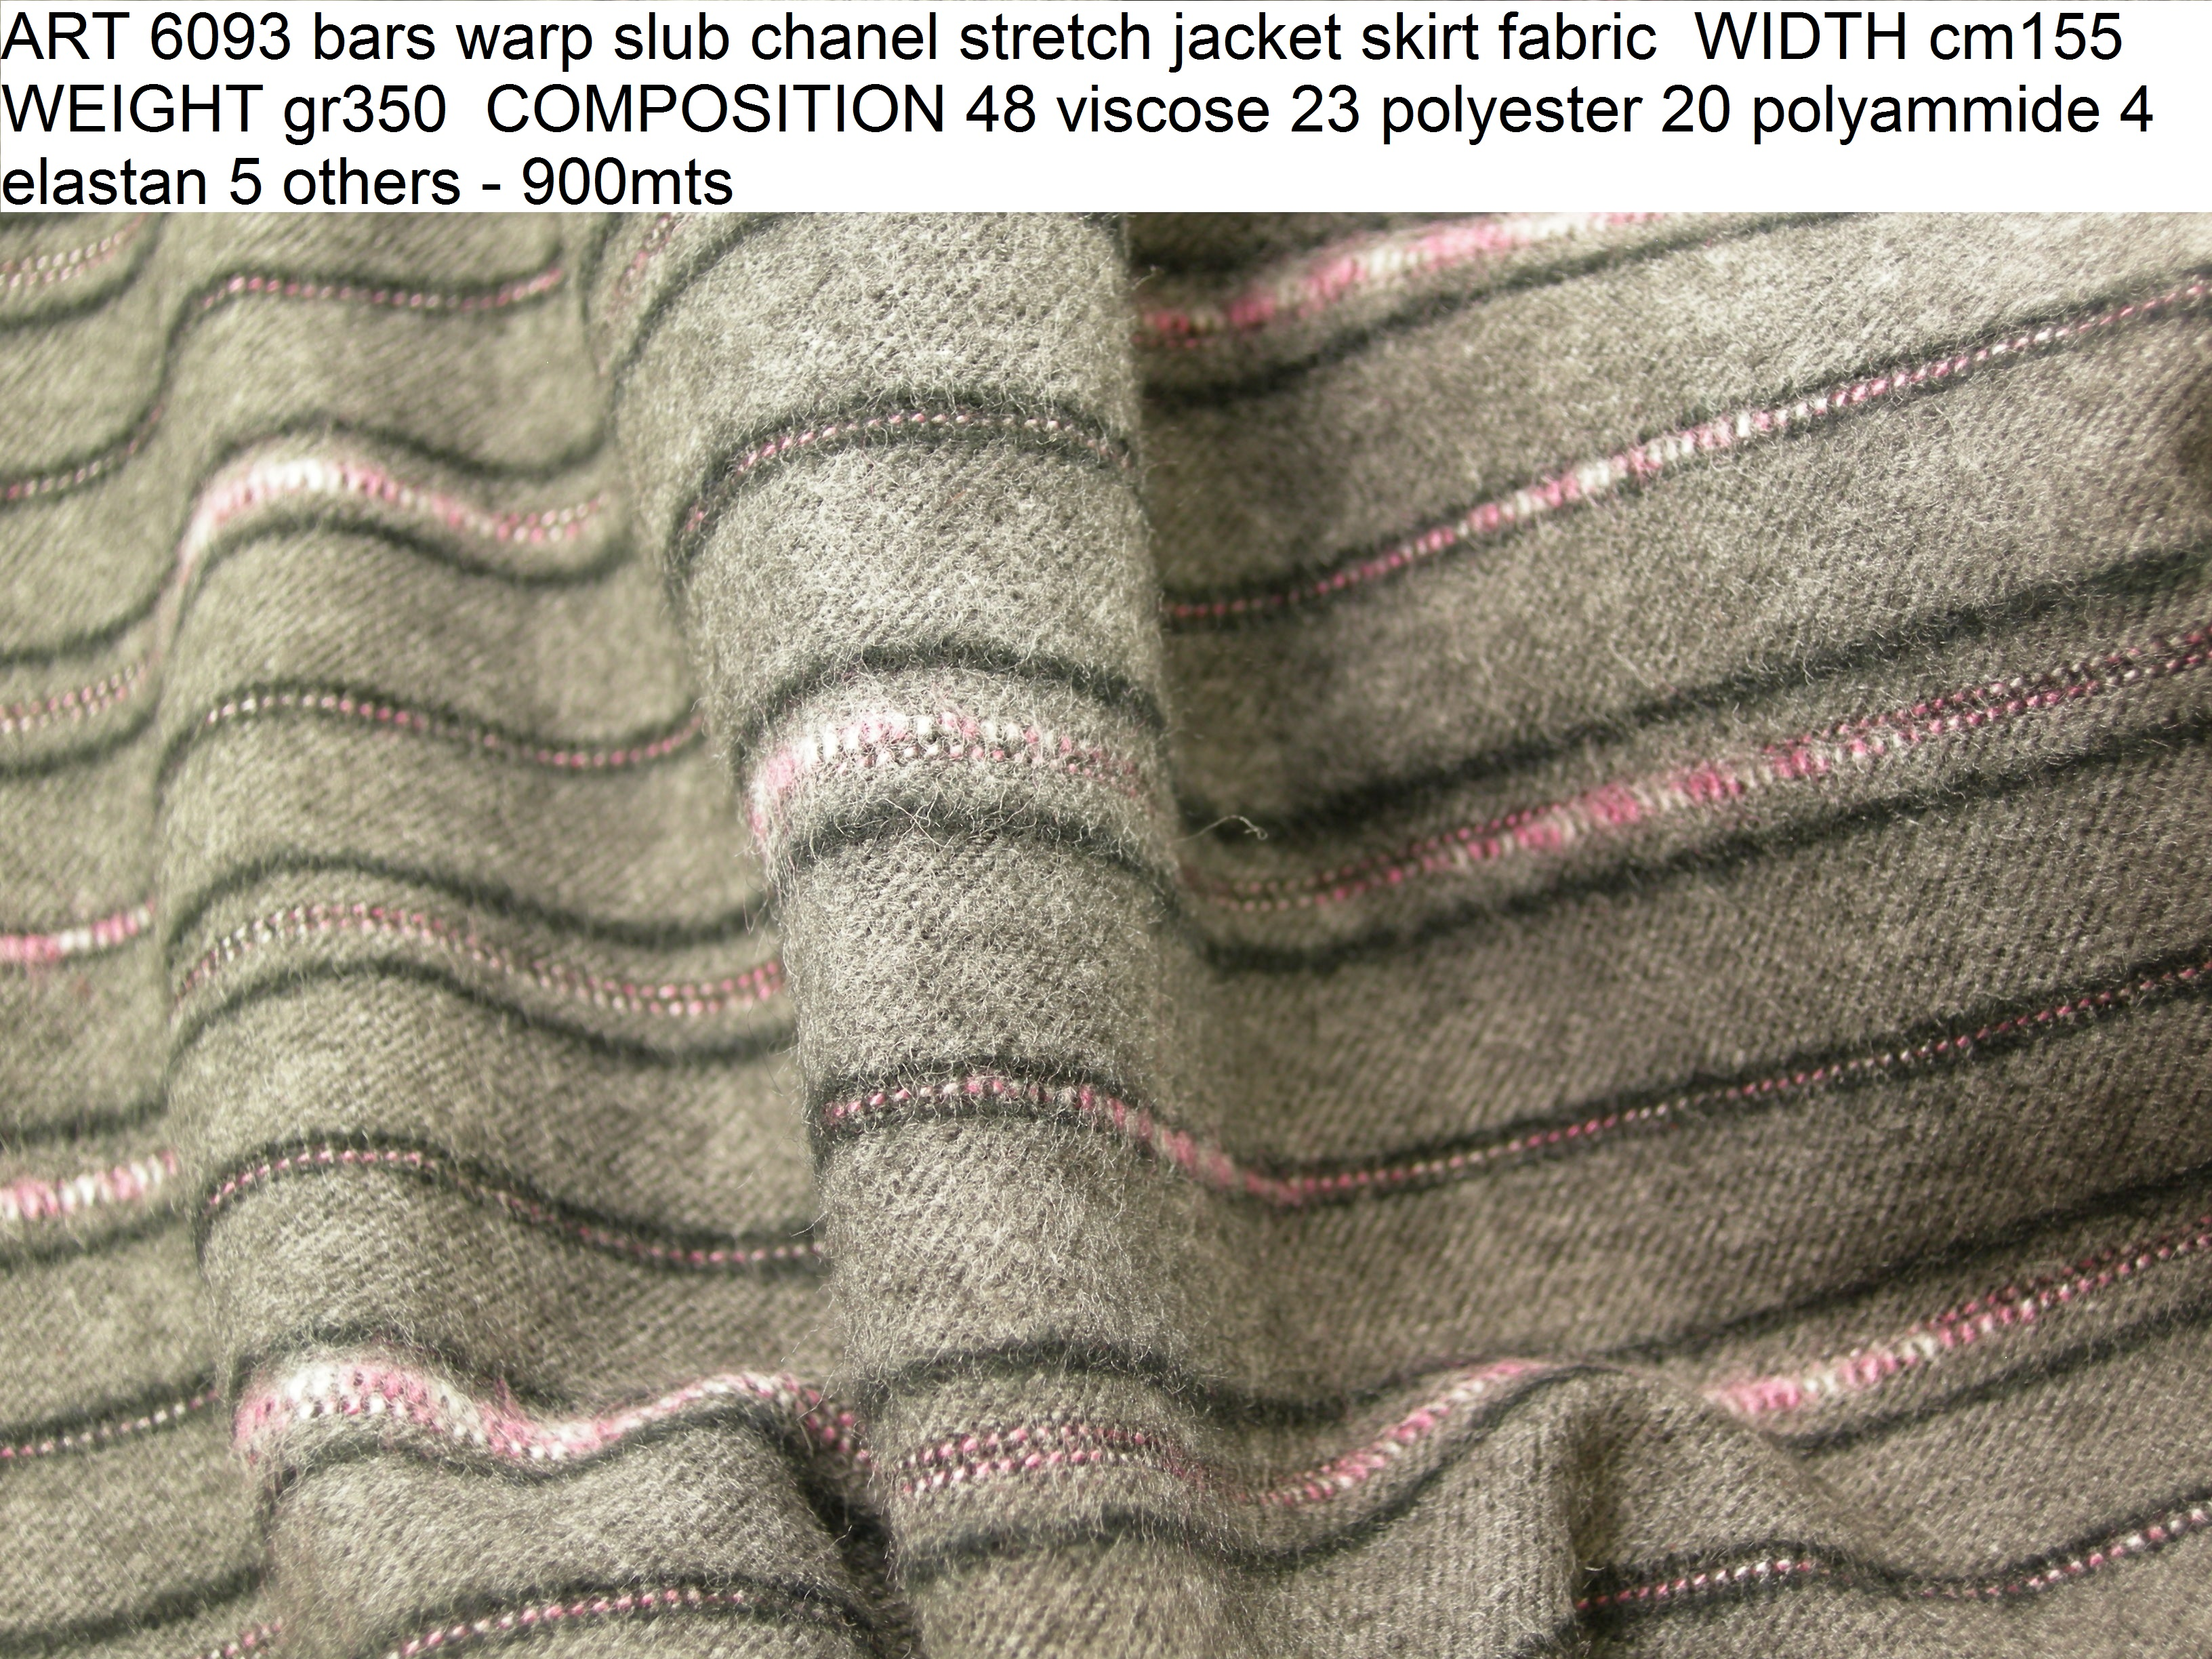 ART 6093 bars warp slub chanel stretch jacket skirt fabric WIDTH cm155 WEIGHT gr350 COMPOSITION 48 viscose 23 polyester 20 polyammide 4 elastan 5 others - 900mts